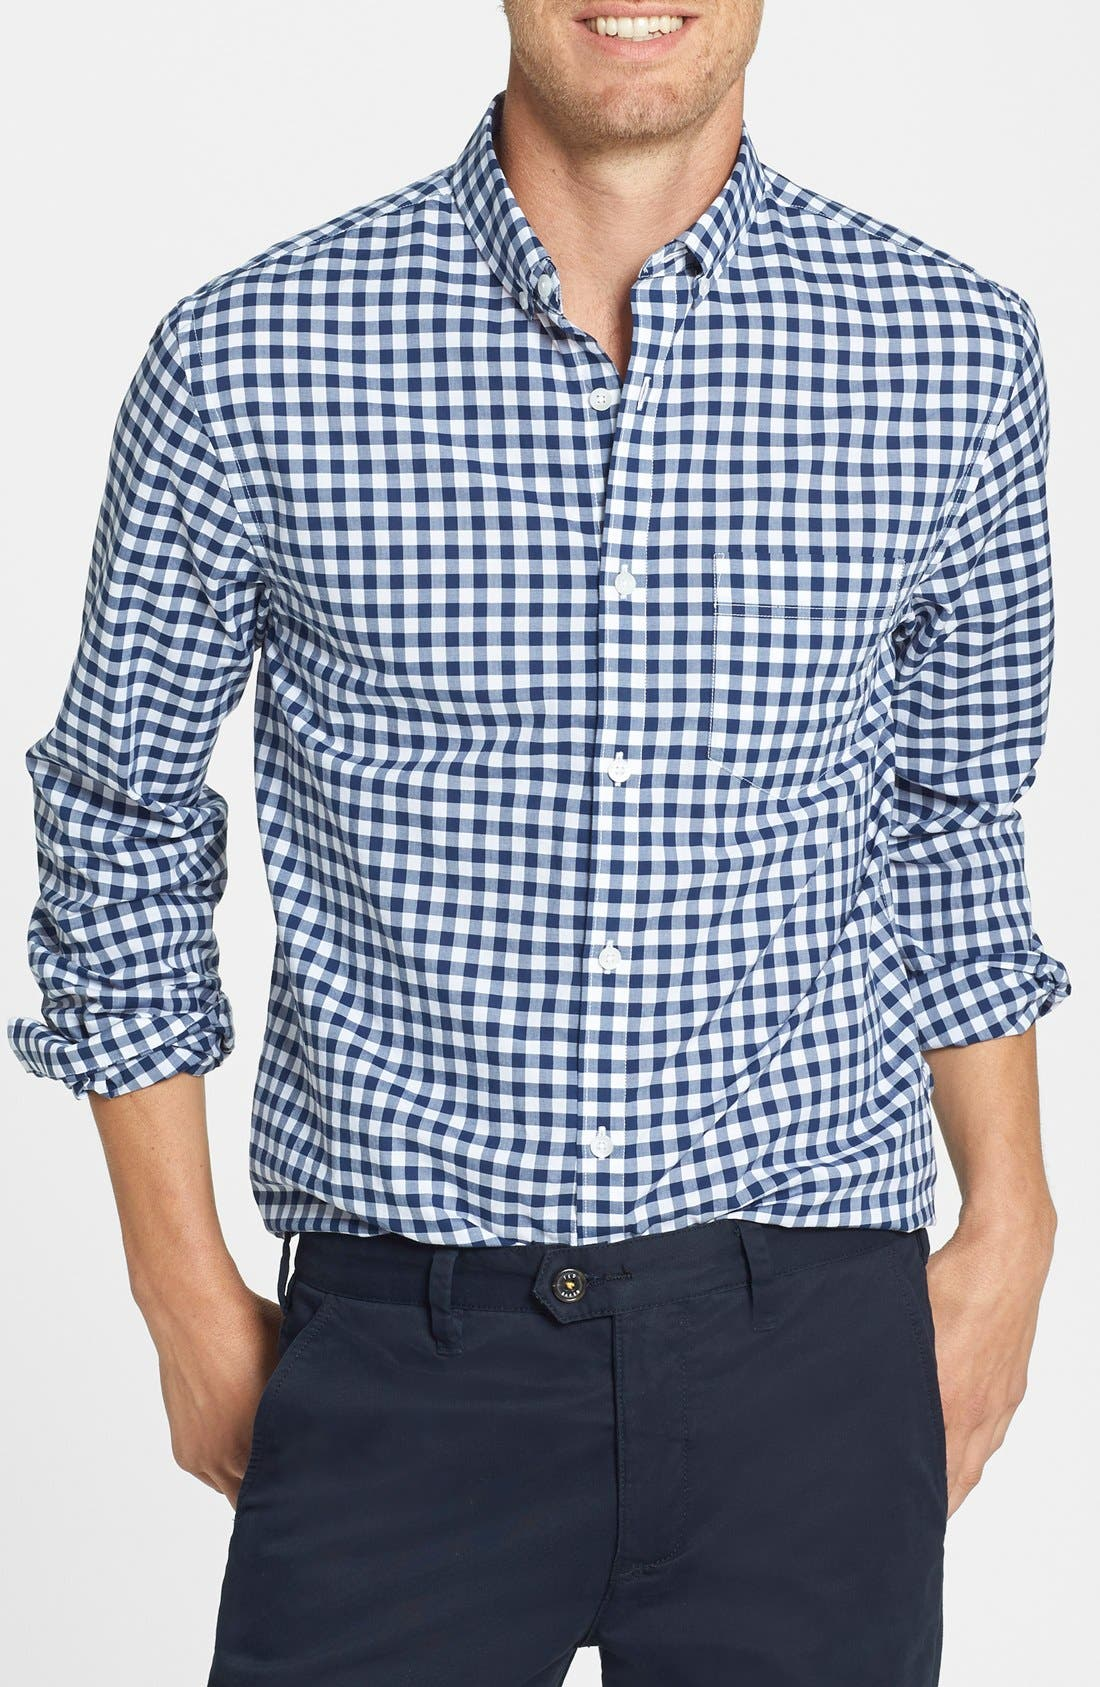 Alternate Image 1 Selected - Bonobos 'Ging Crosby' Gingham Standard Fit Sport Shirt